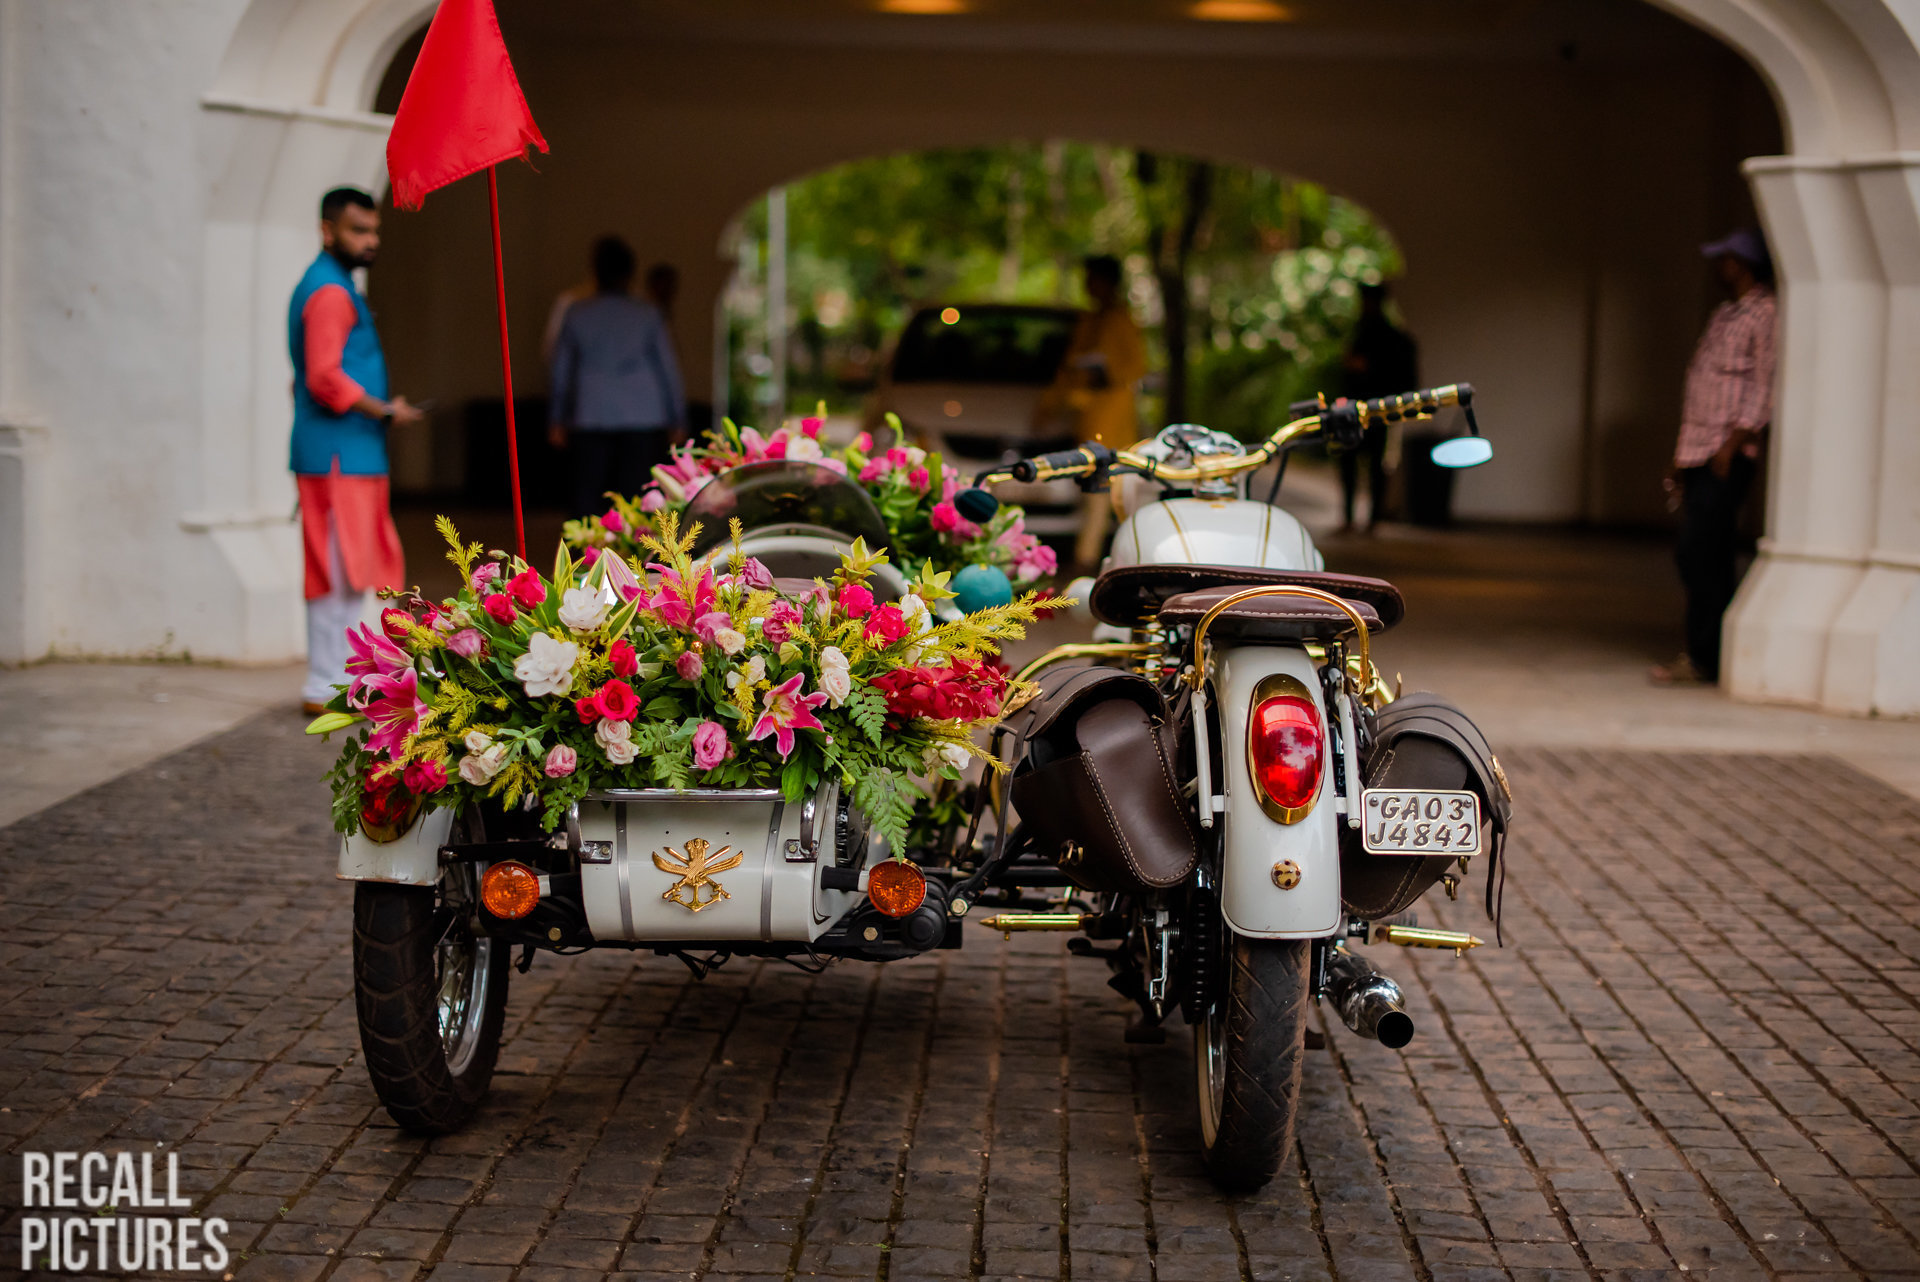 groom entry idea - on a motorcycle